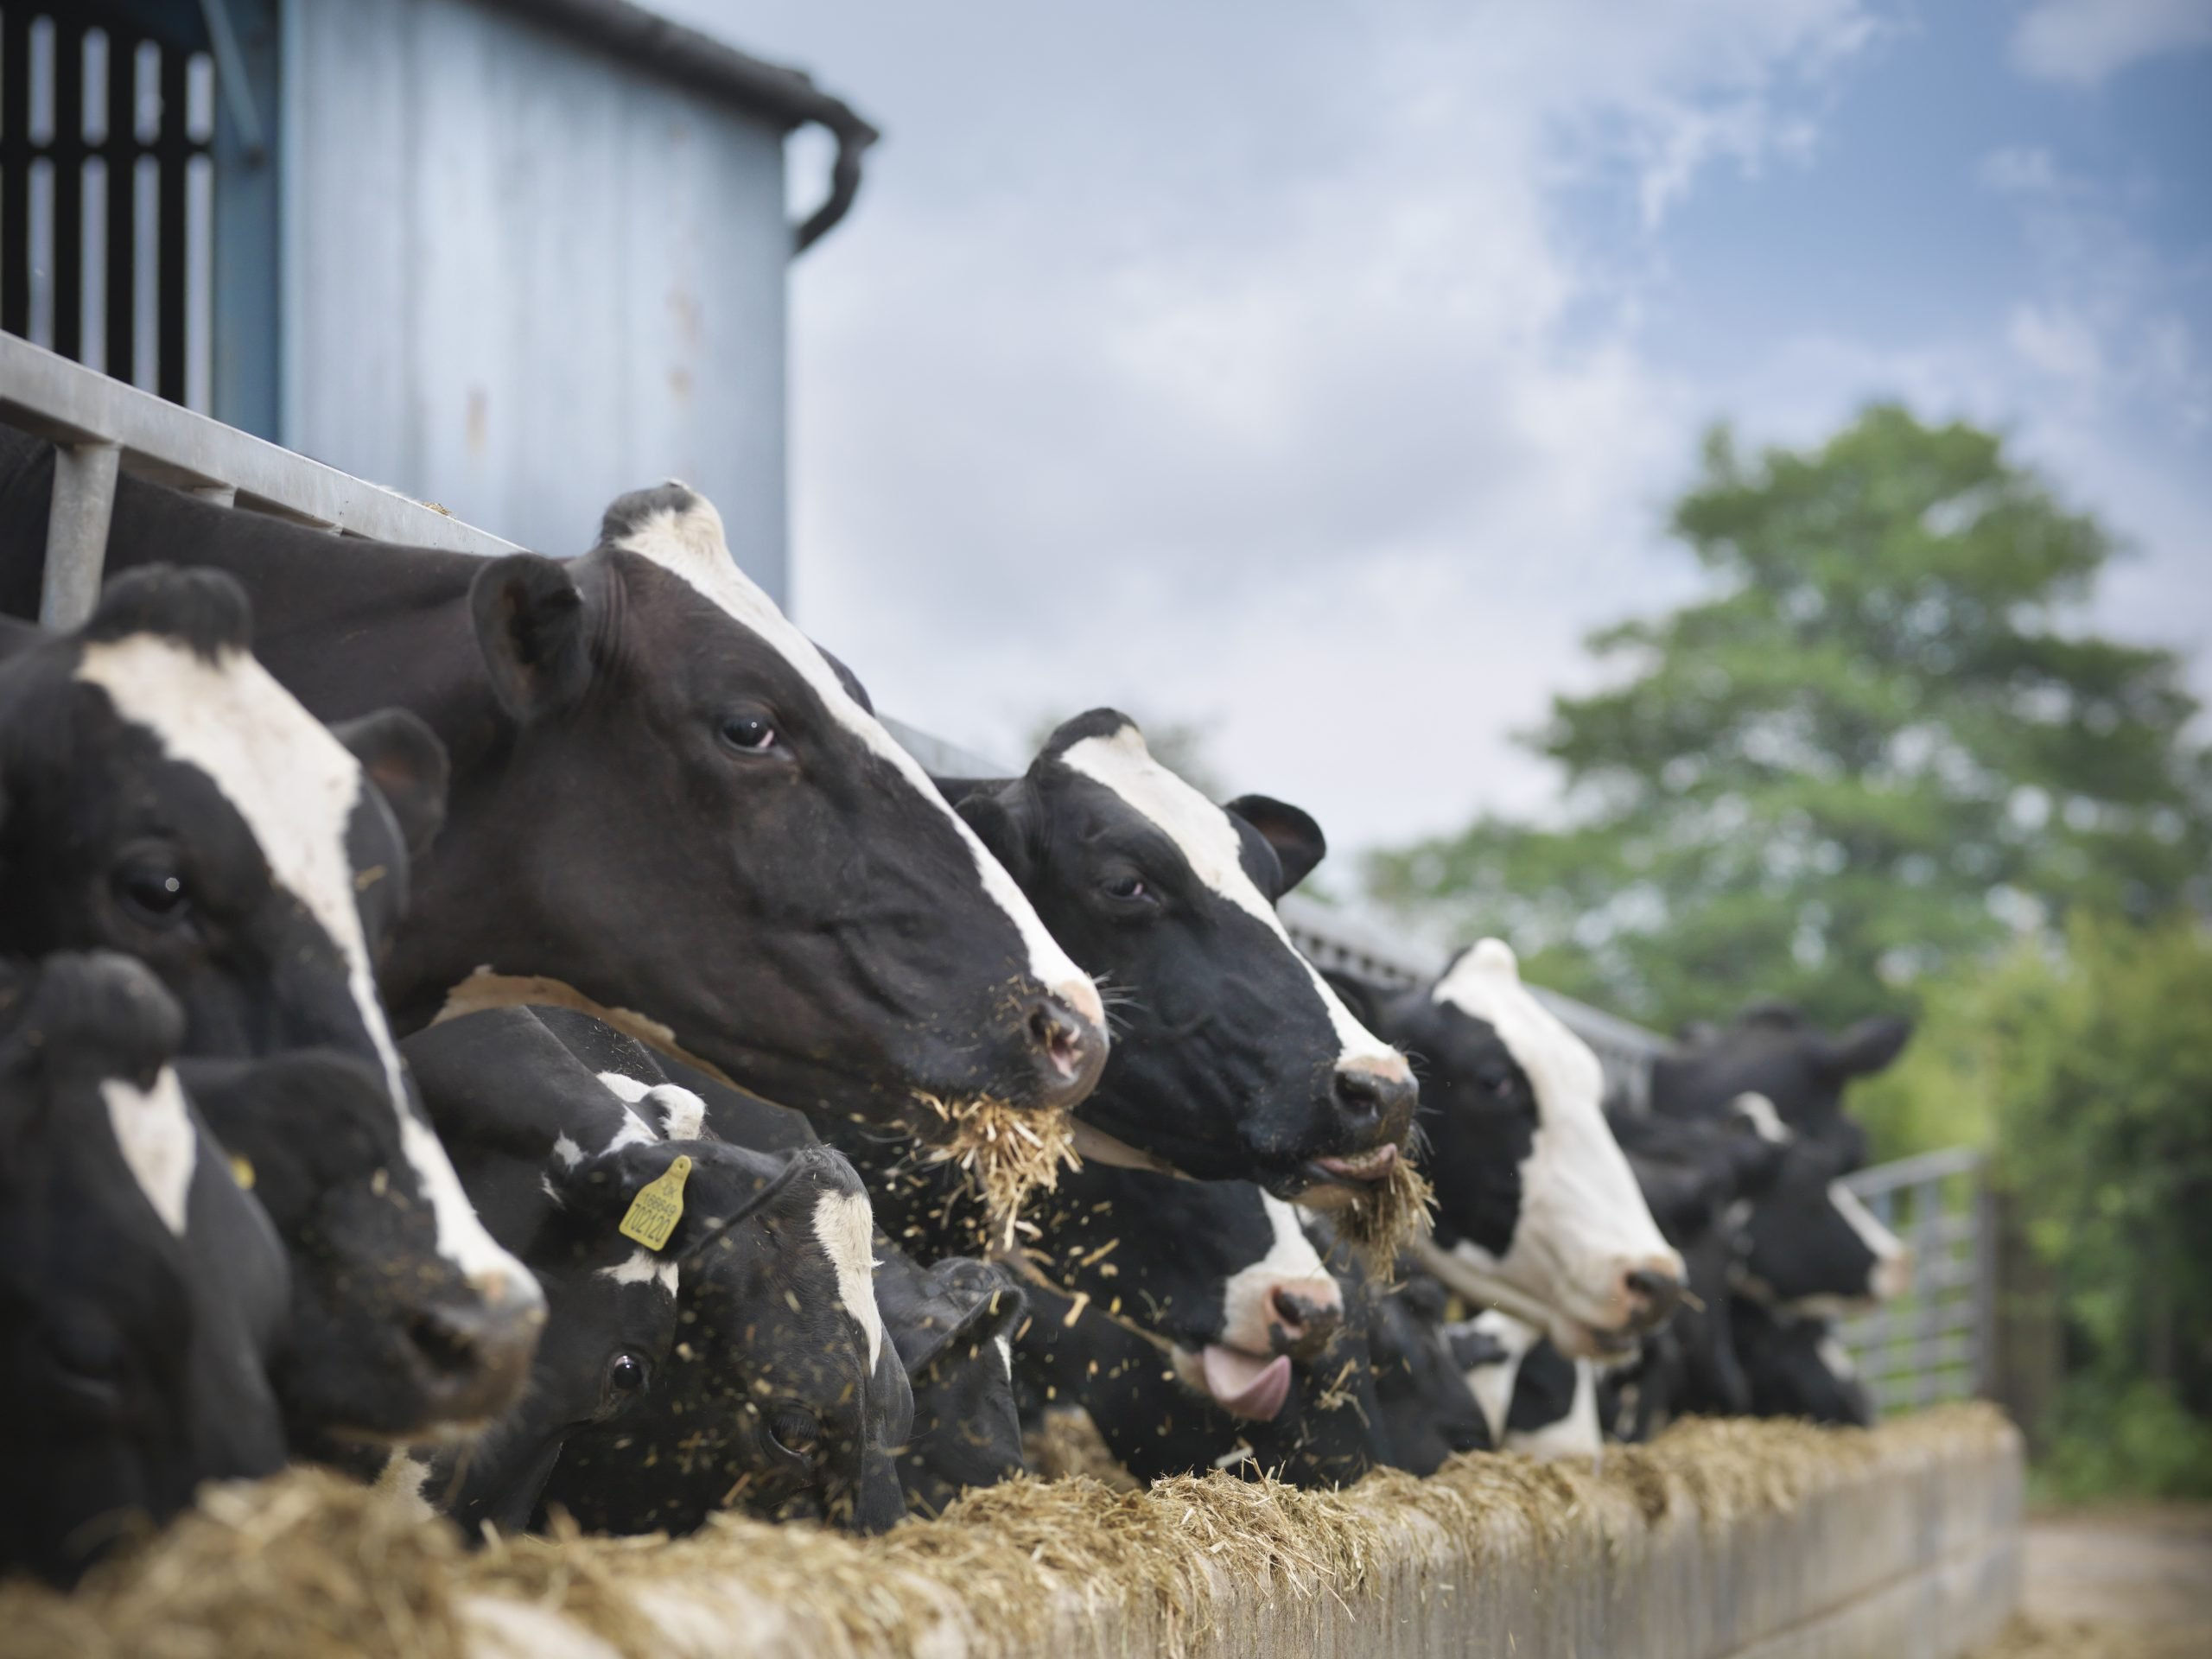 'There are ghosts in the land': how US mega-dairies are killing off small farms